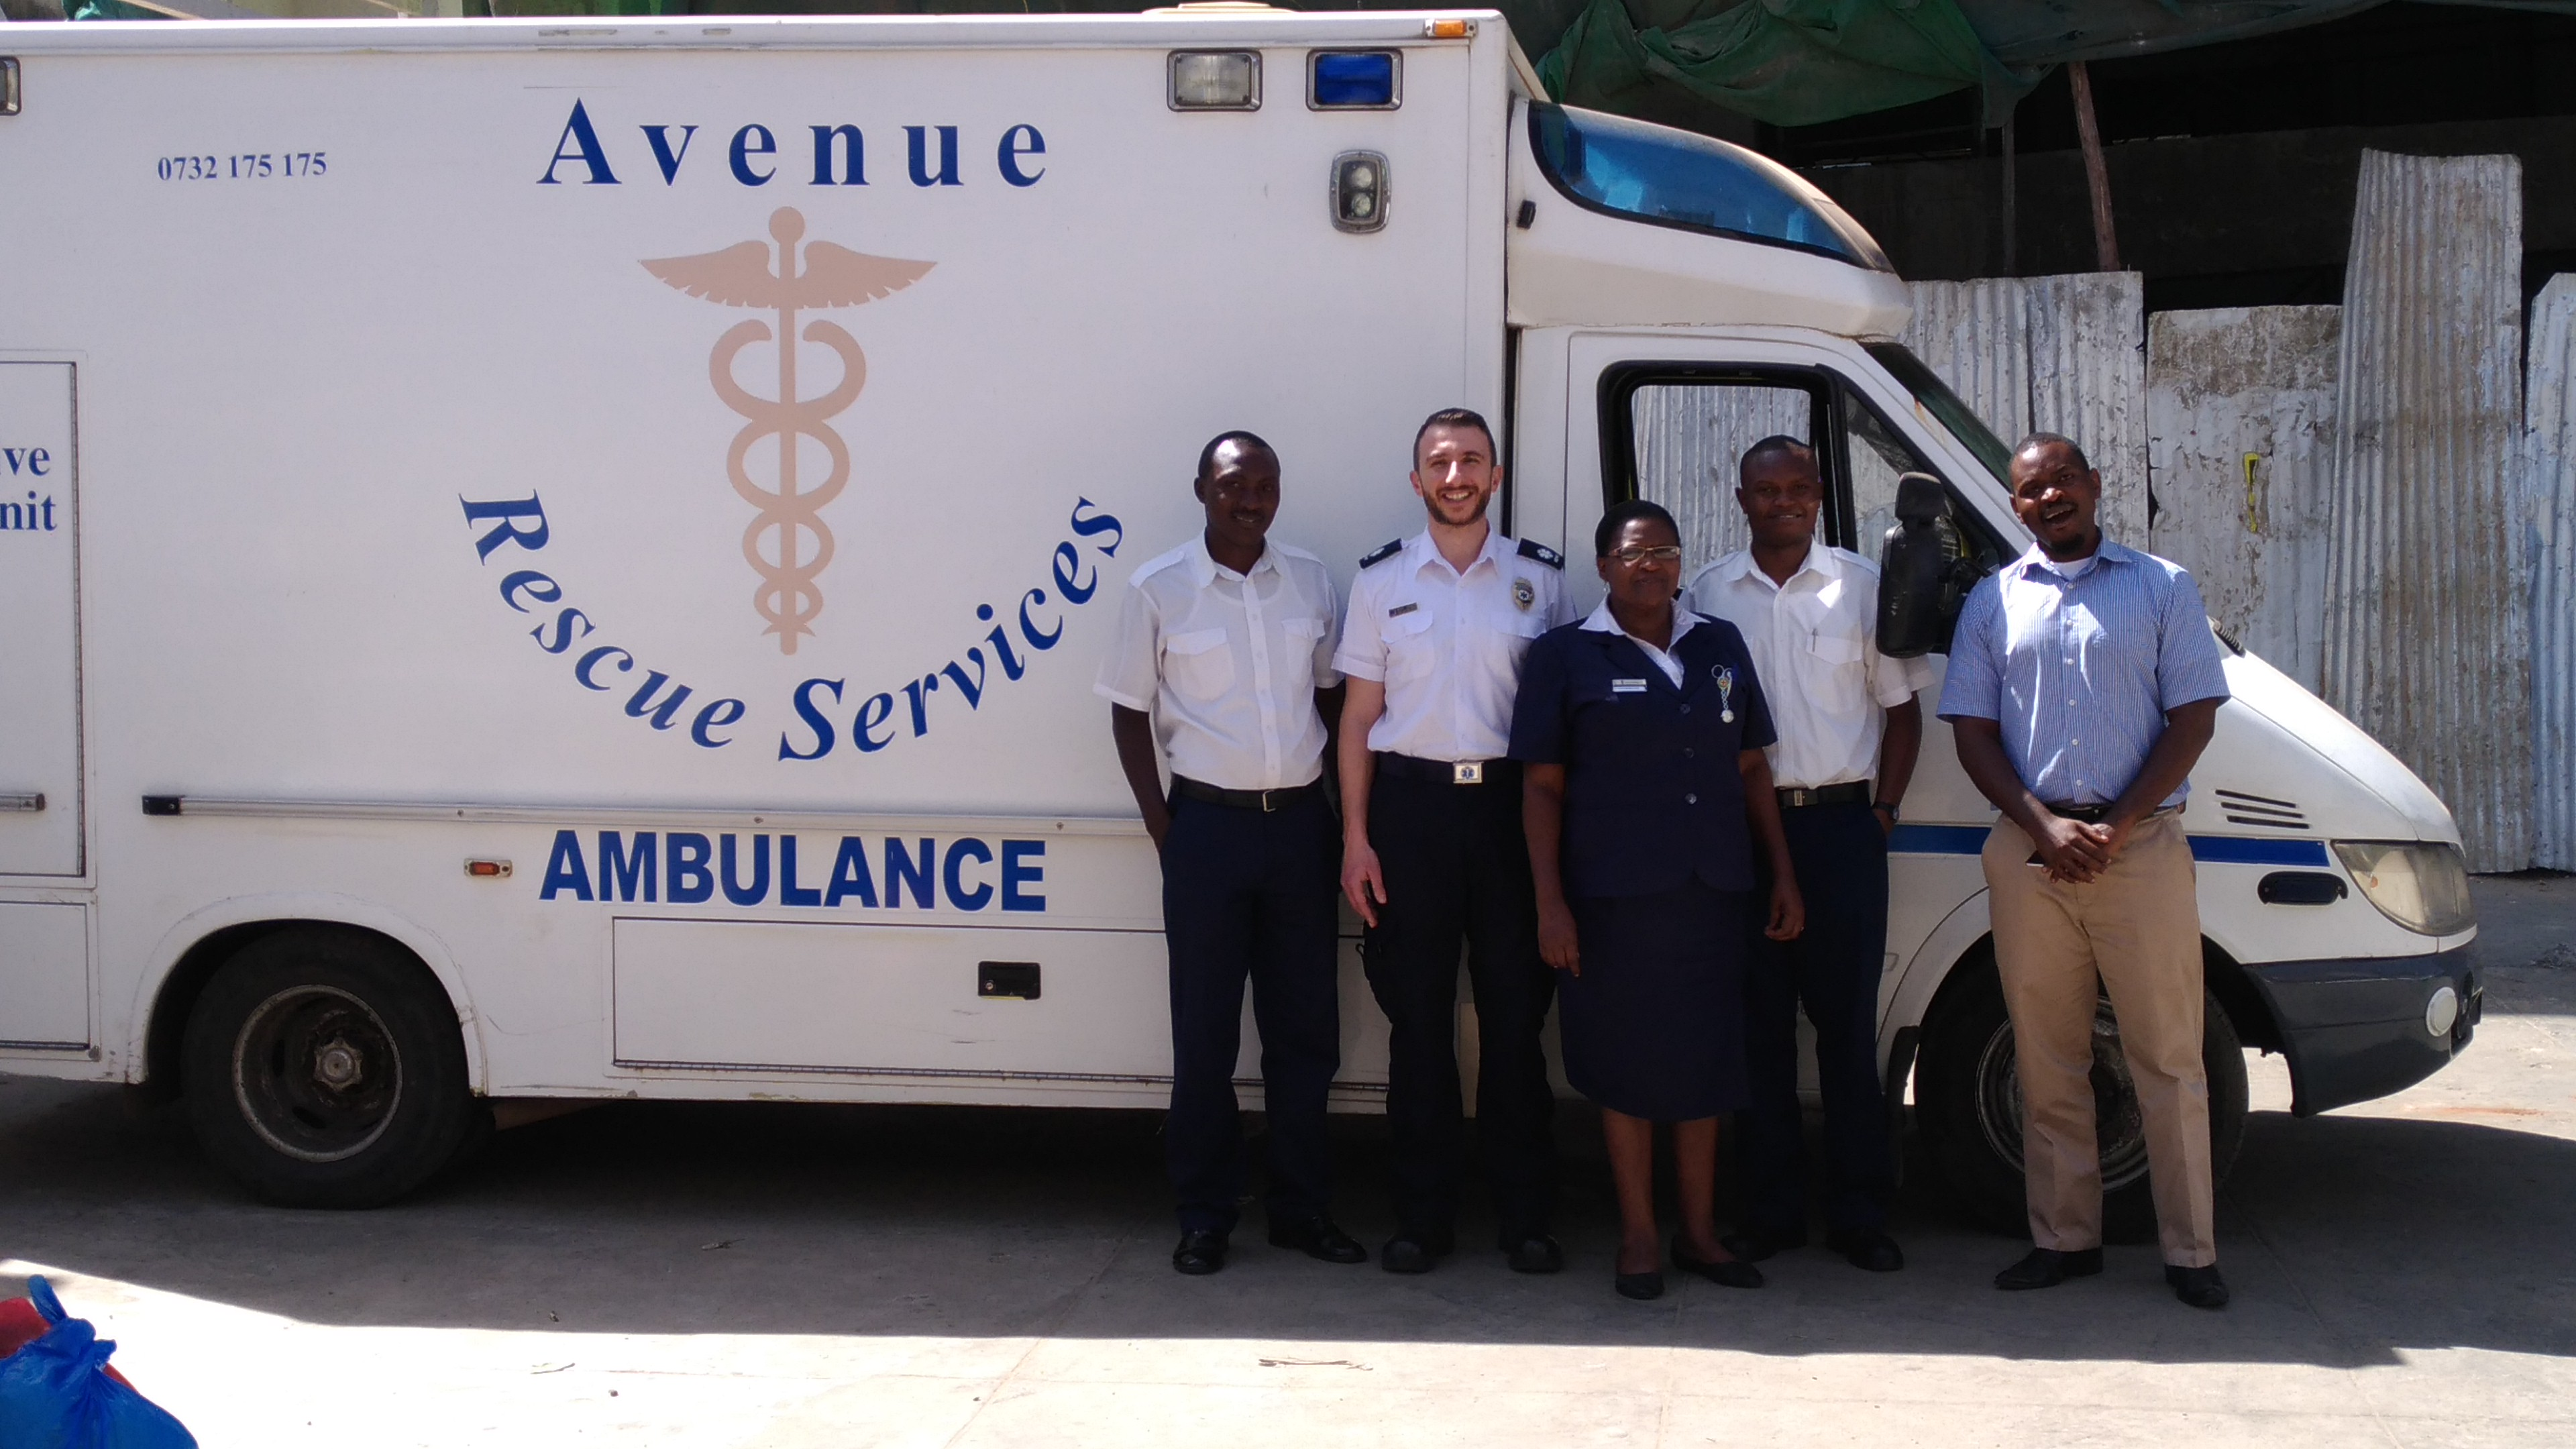 Avenue Rescue Services - Nairobi